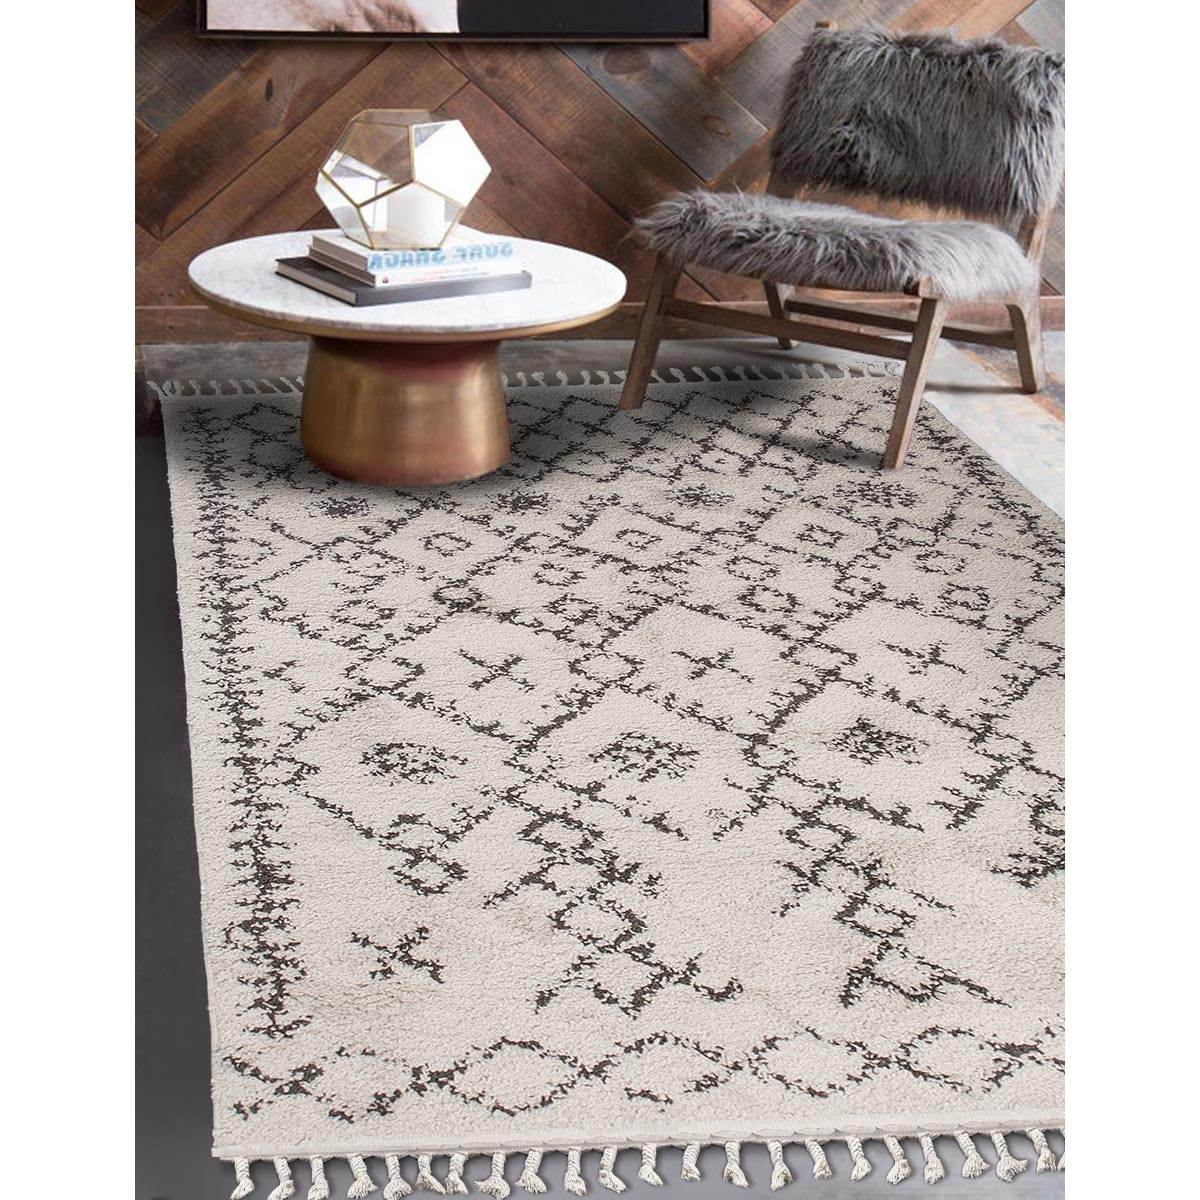 Shaggy Marrakech Rug 06 Cream/Black 3